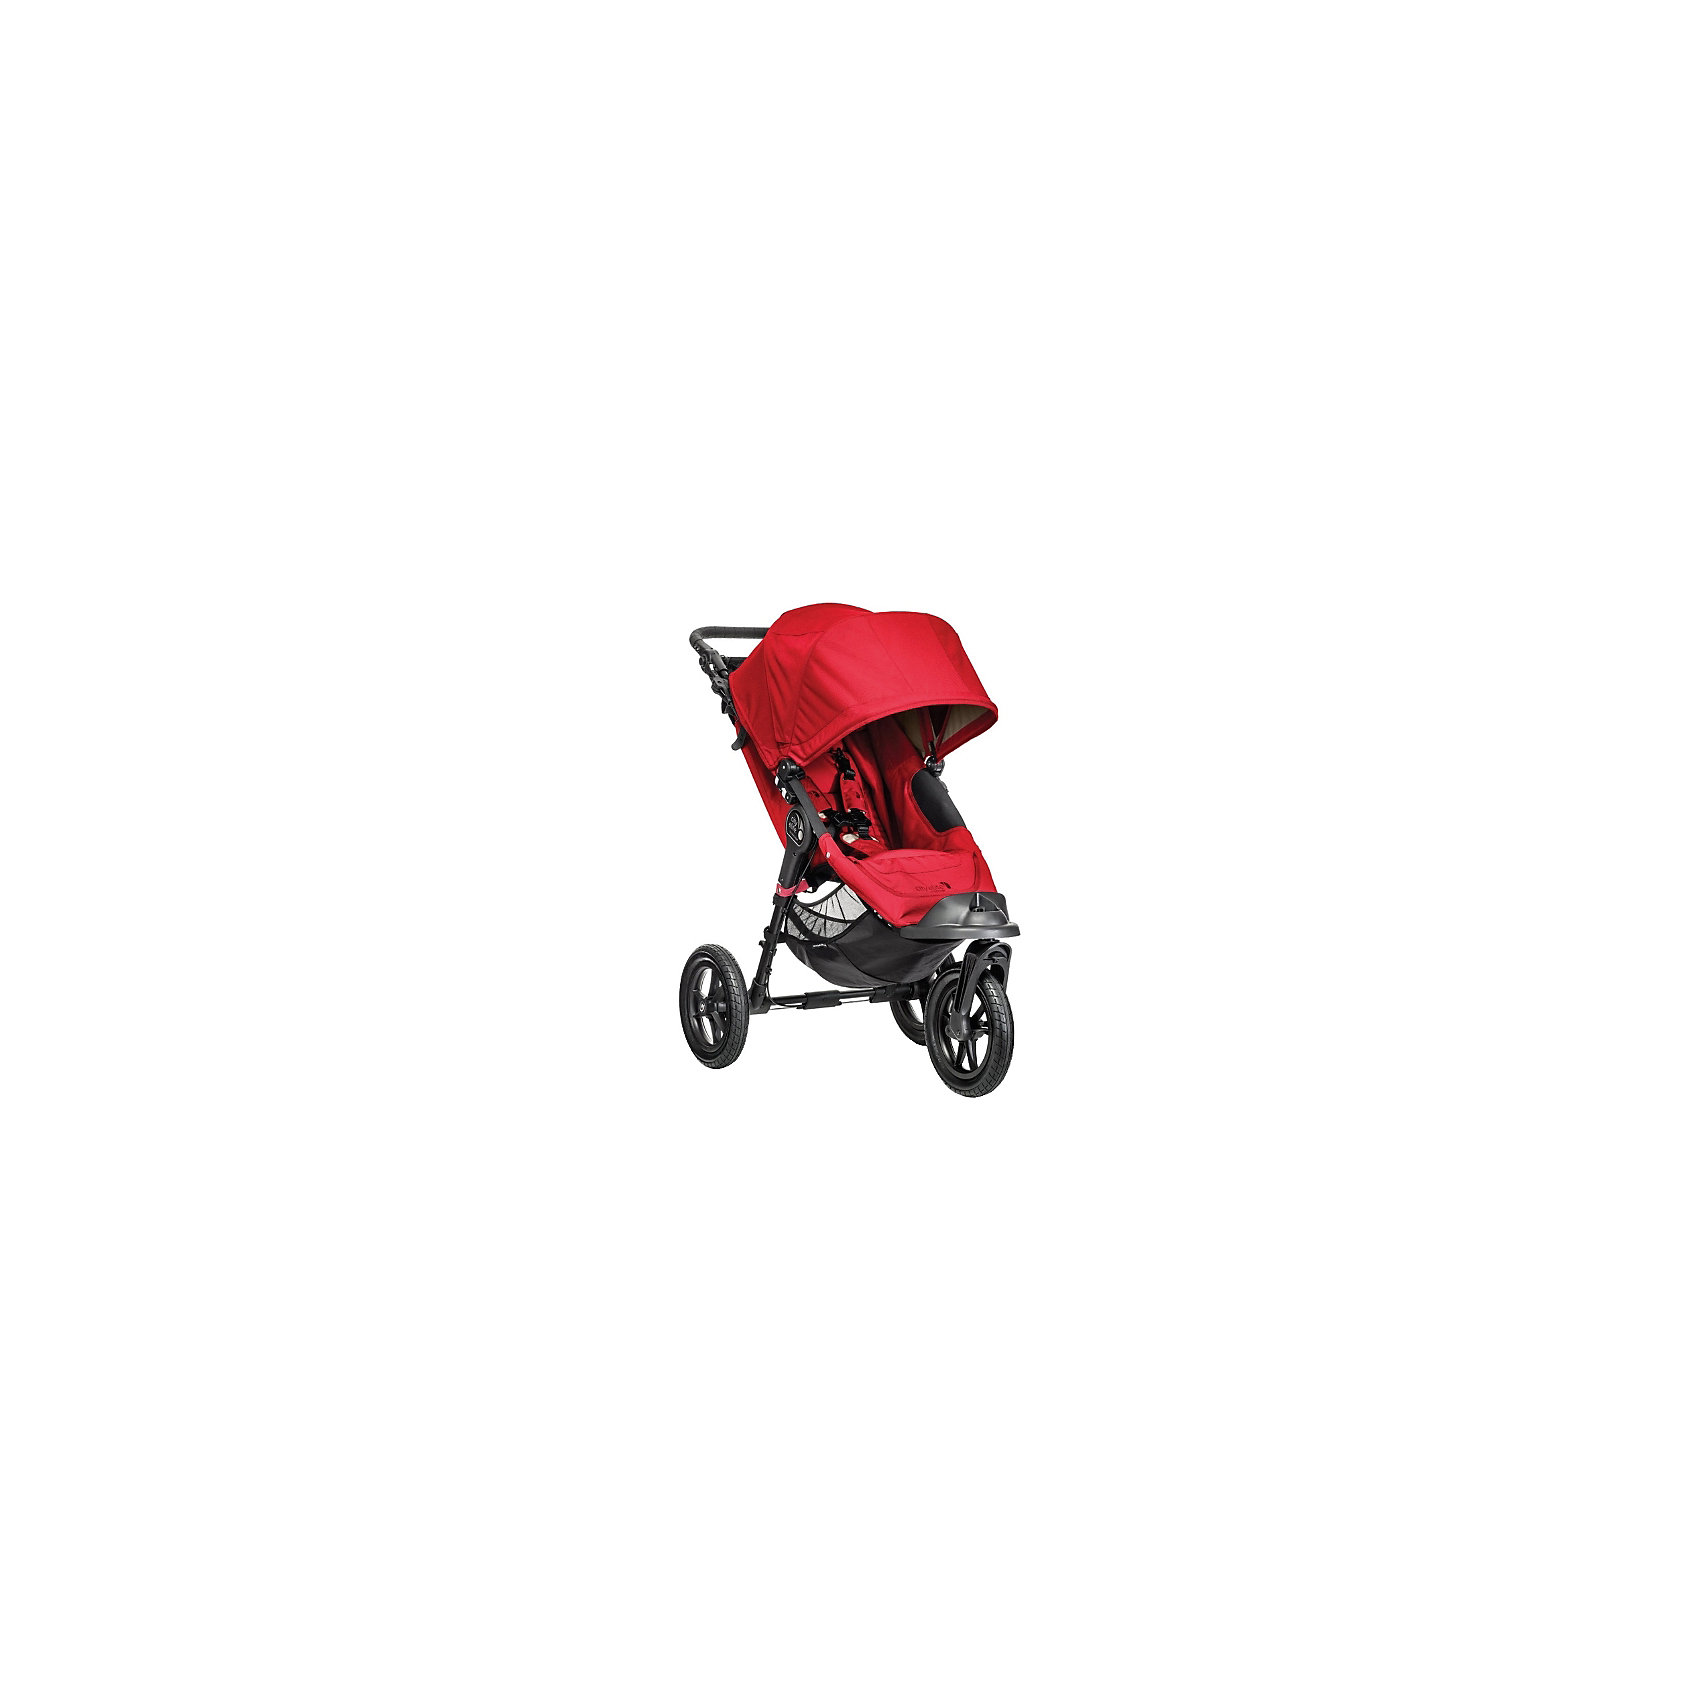 Baby Jogger Прогулочная коляска City Elite Single, Baby Jogger, красный прогулочная коляска cool baby kdd 6699gb t fuchsia light grey